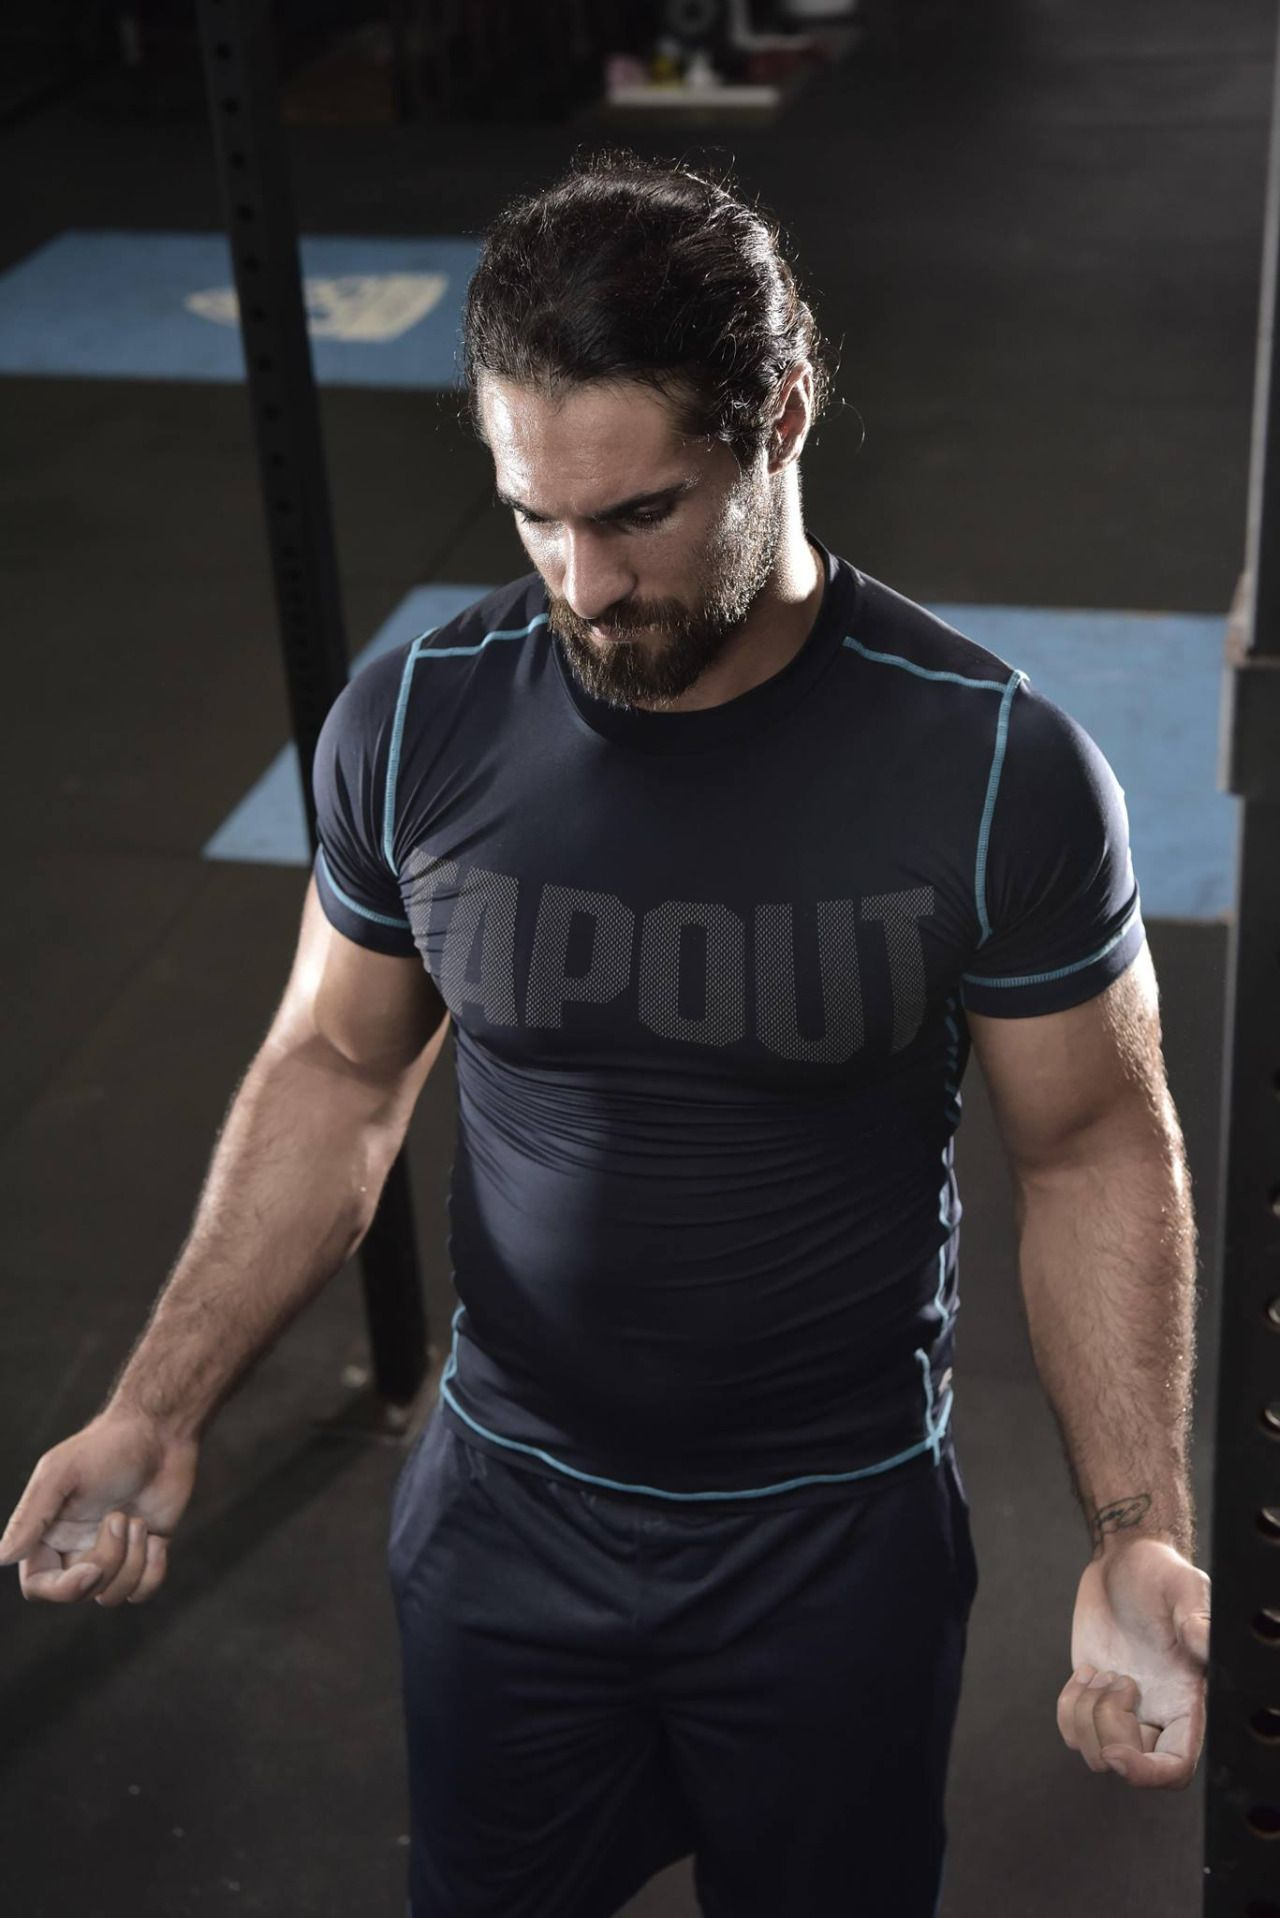 HQ Tapout Facebook Photo Seth Rollins putting in another